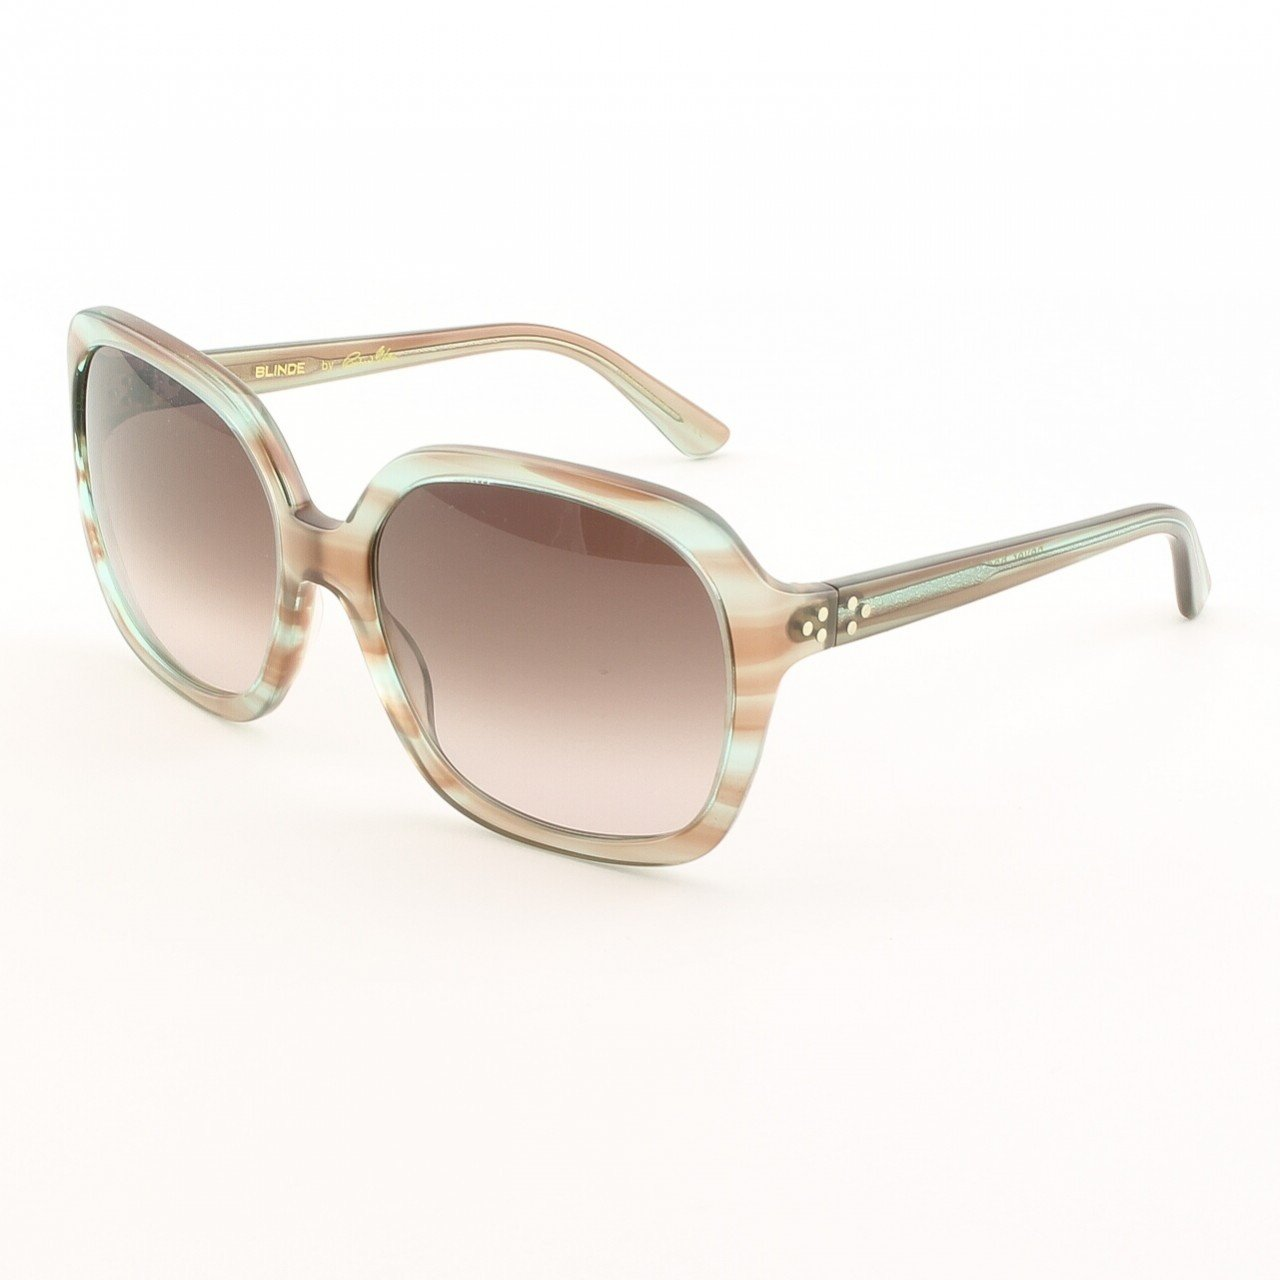 Blinde Never Had It So Good Women's Sunglasses Col. Blue Crystal Tortoise with Pink Gradient Lenses